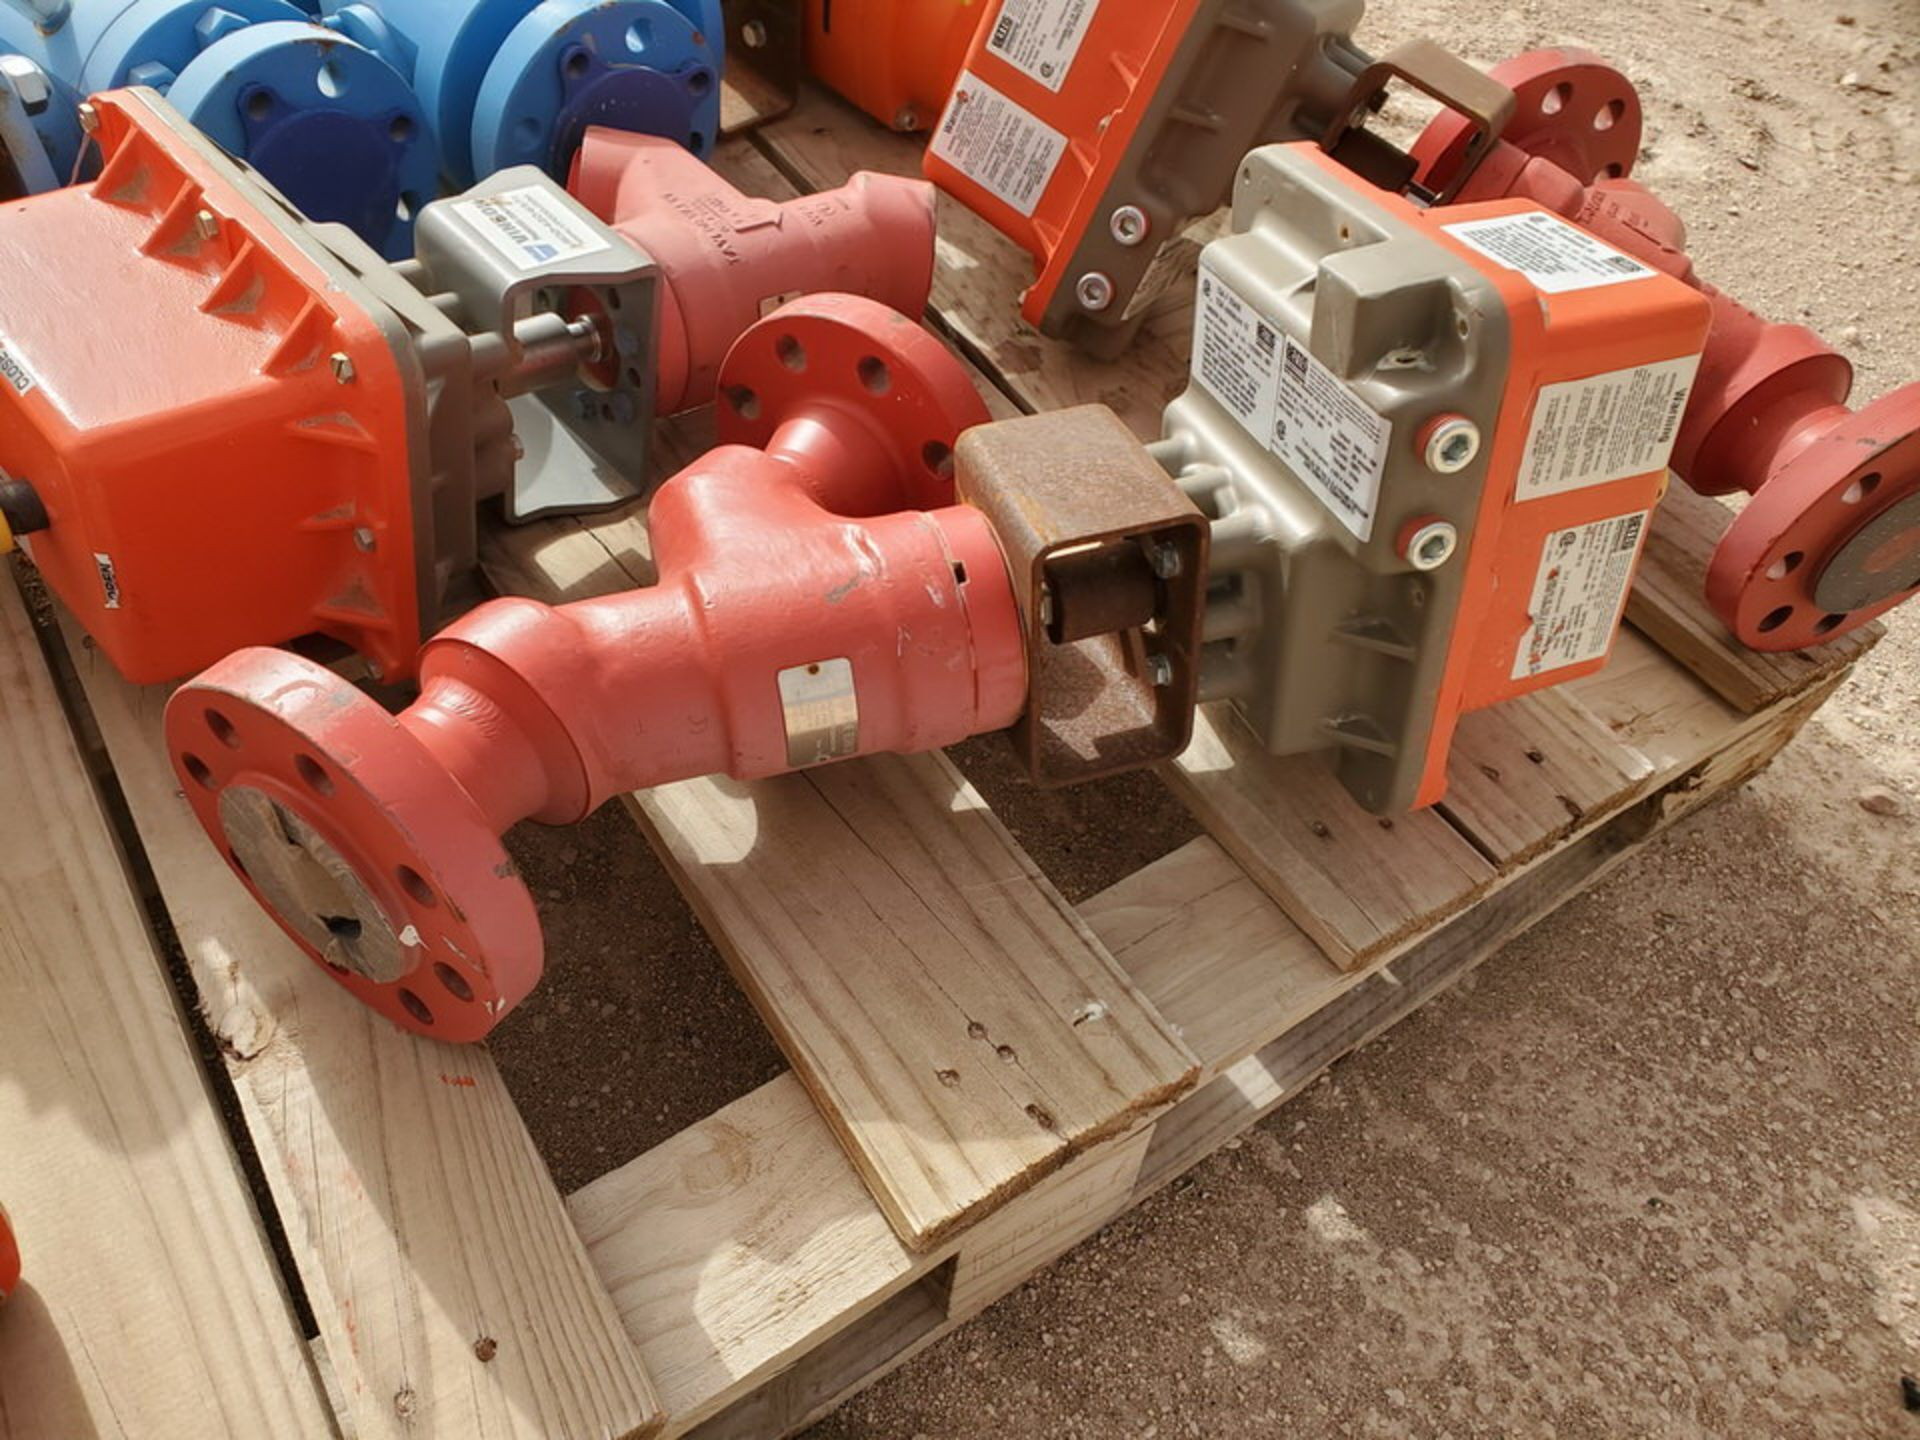 """GWC Assorted Actuated Valves (2) 2"""" x 2"""" 600# Ball Valves W/ Bettis Actuators; W/ (4) Taylor 2"""" 600# - Image 5 of 9"""